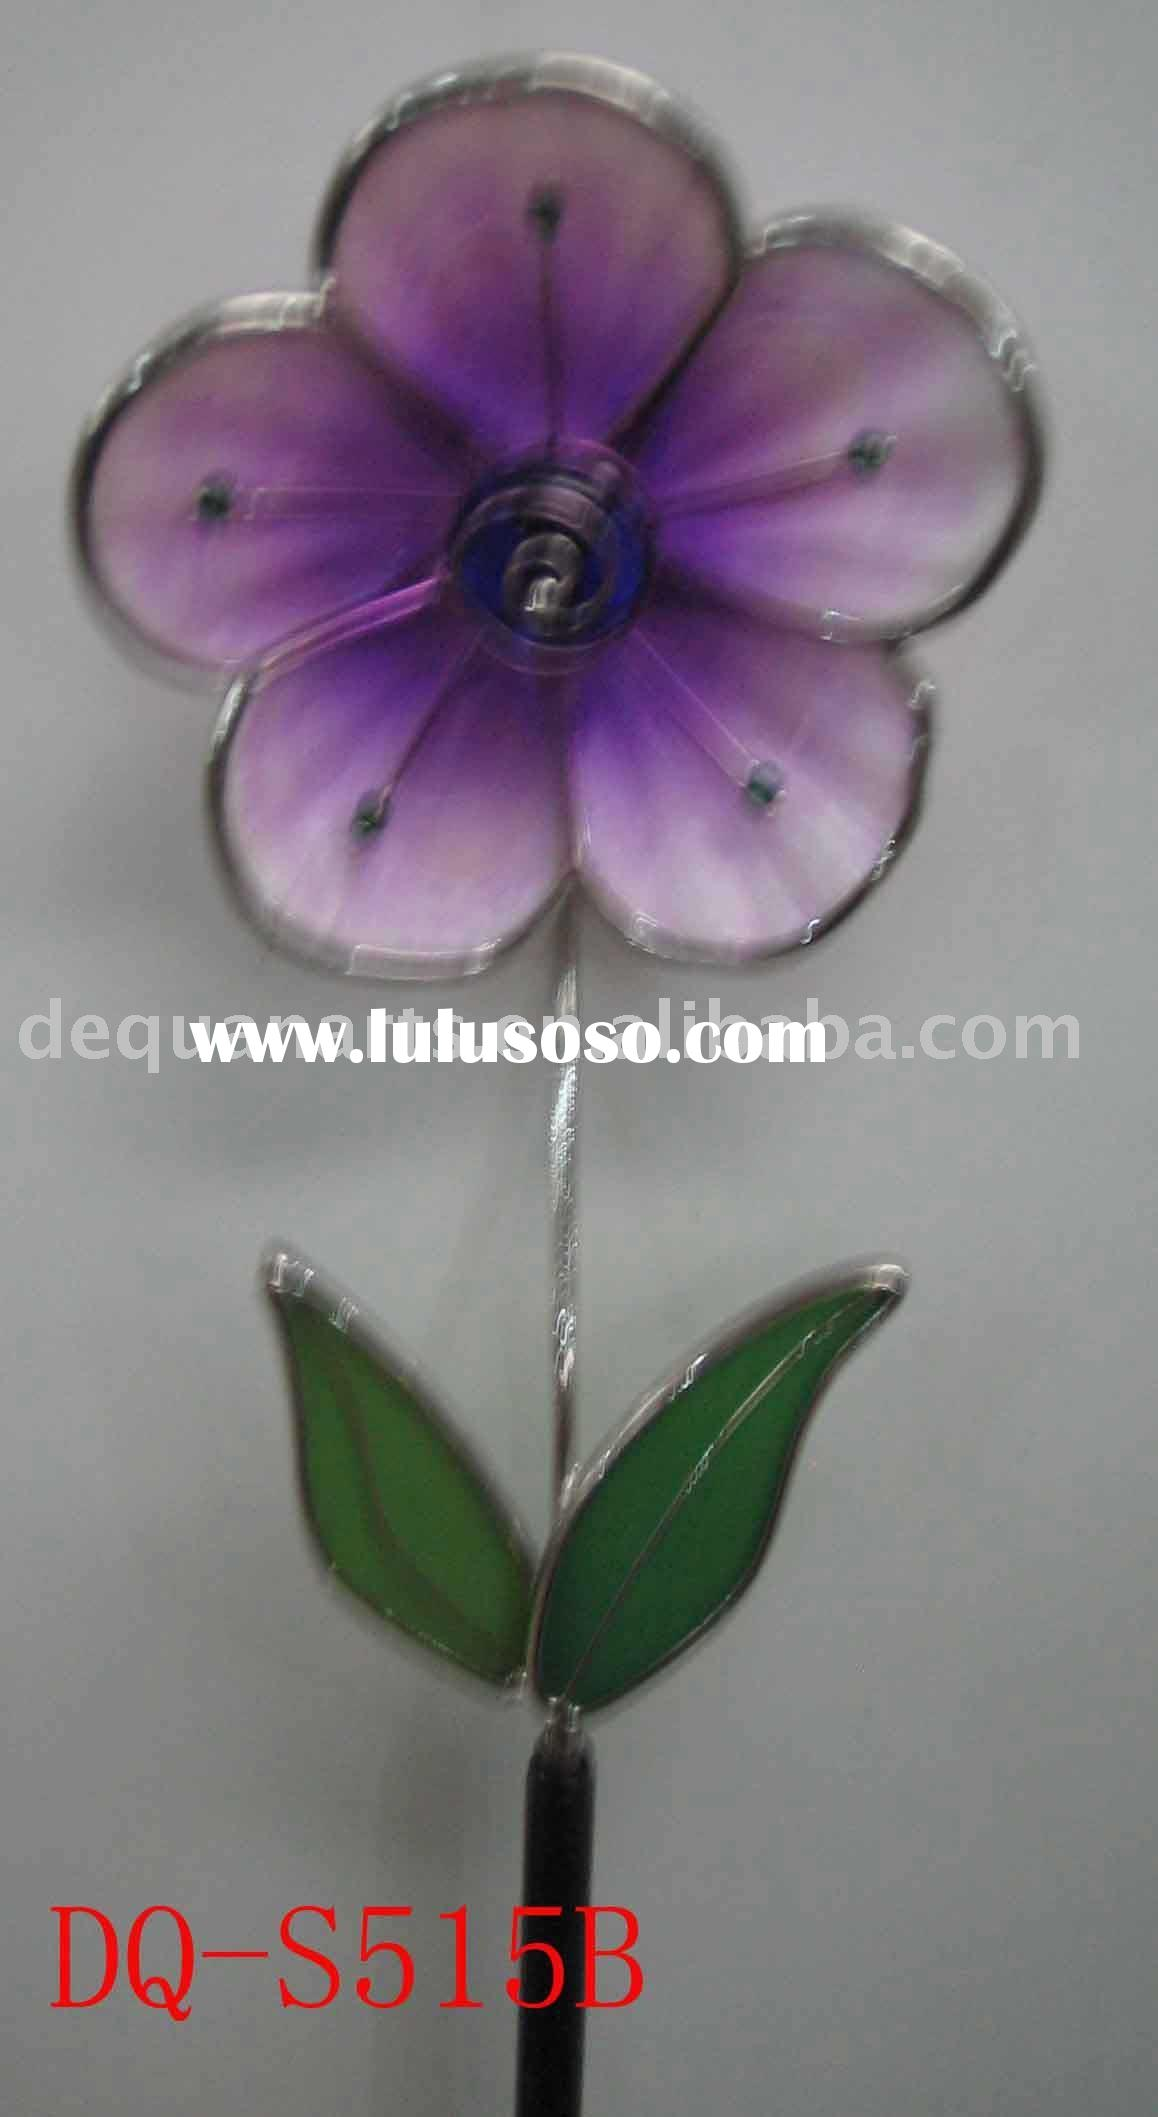 Stained glass flower stake( craft, garden decoration, art)